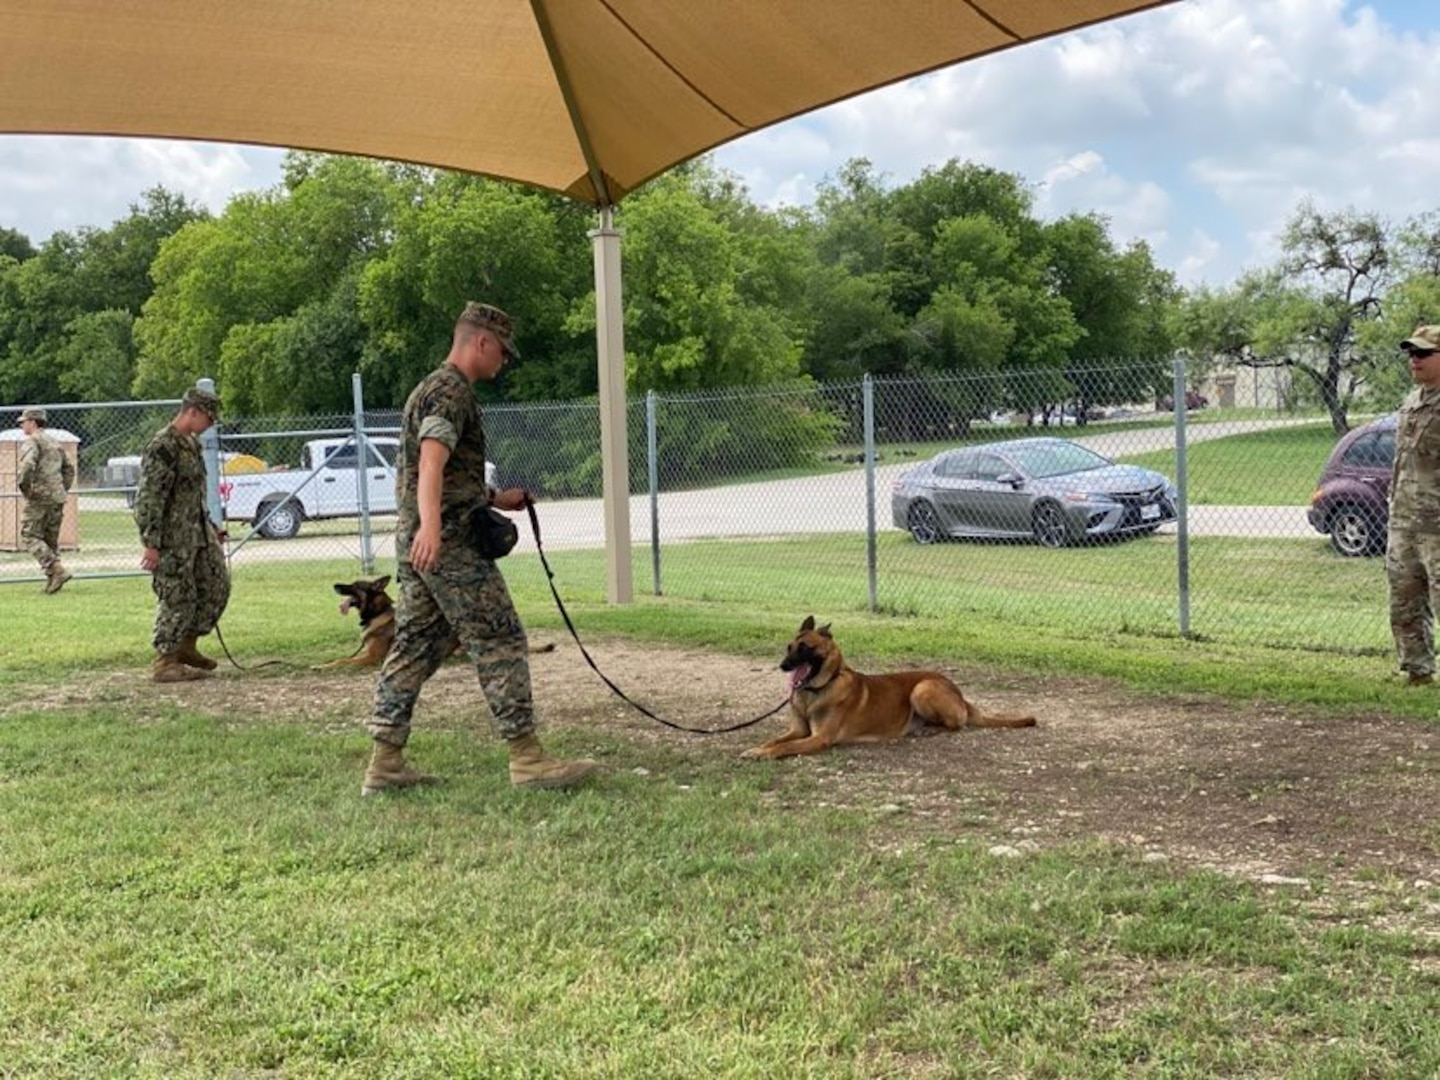 Military working dog handler training students from the Army, Air Force, Marine Corps and Navy lead a virtual K-9 demonstration for the Fair Oaks, Texas, Rotary Club June 3, 2020, at Joint Base San Antonio-Lackland.